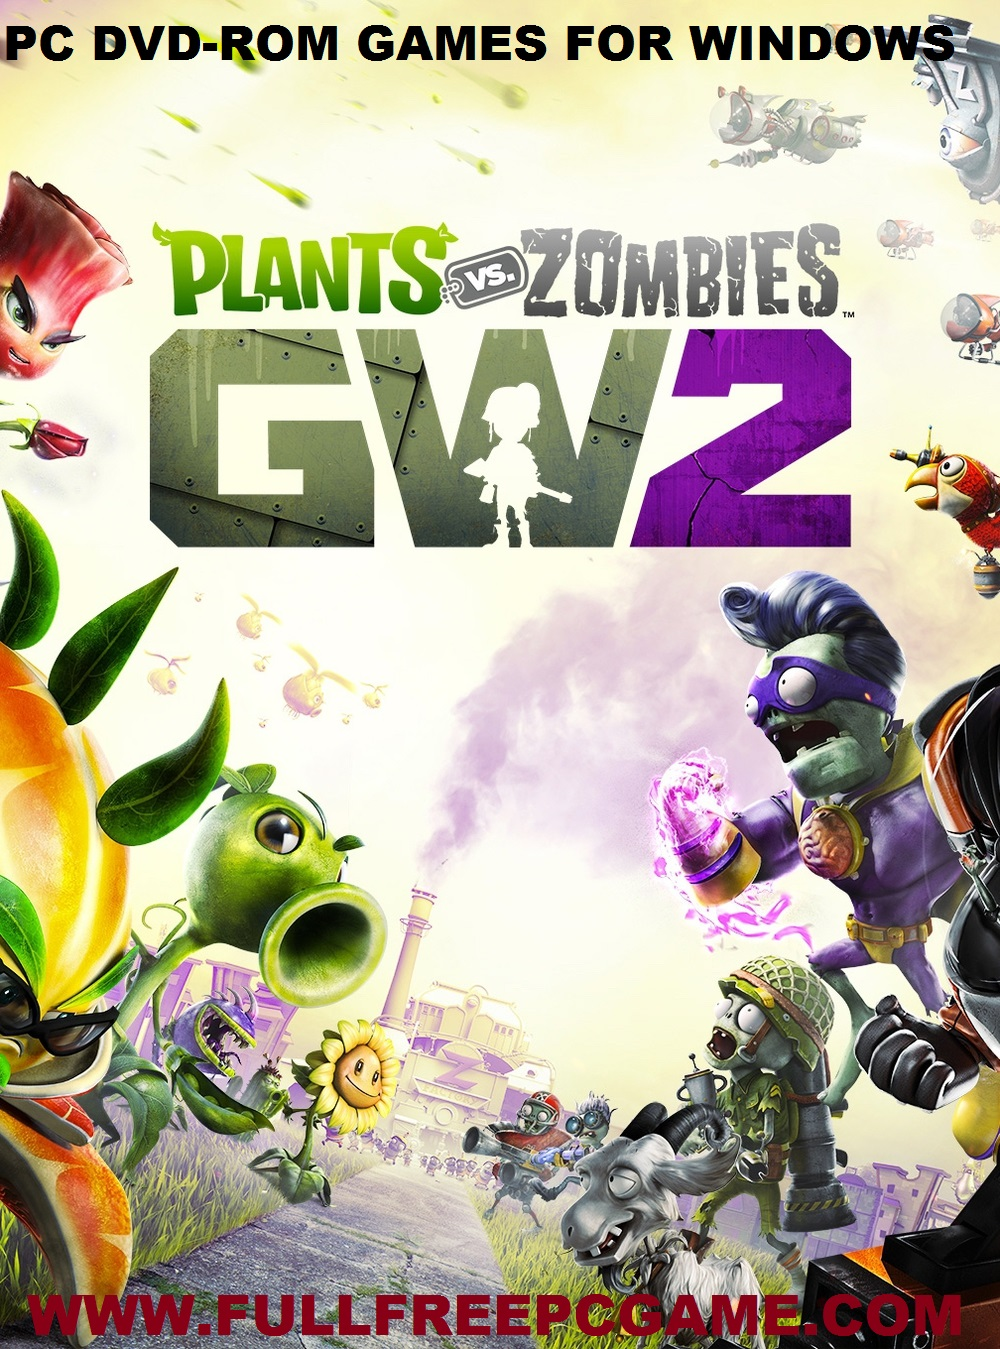 Full Free Game Download Plants Vs Zombies Garden Warfare 2 Download Pc Full Game